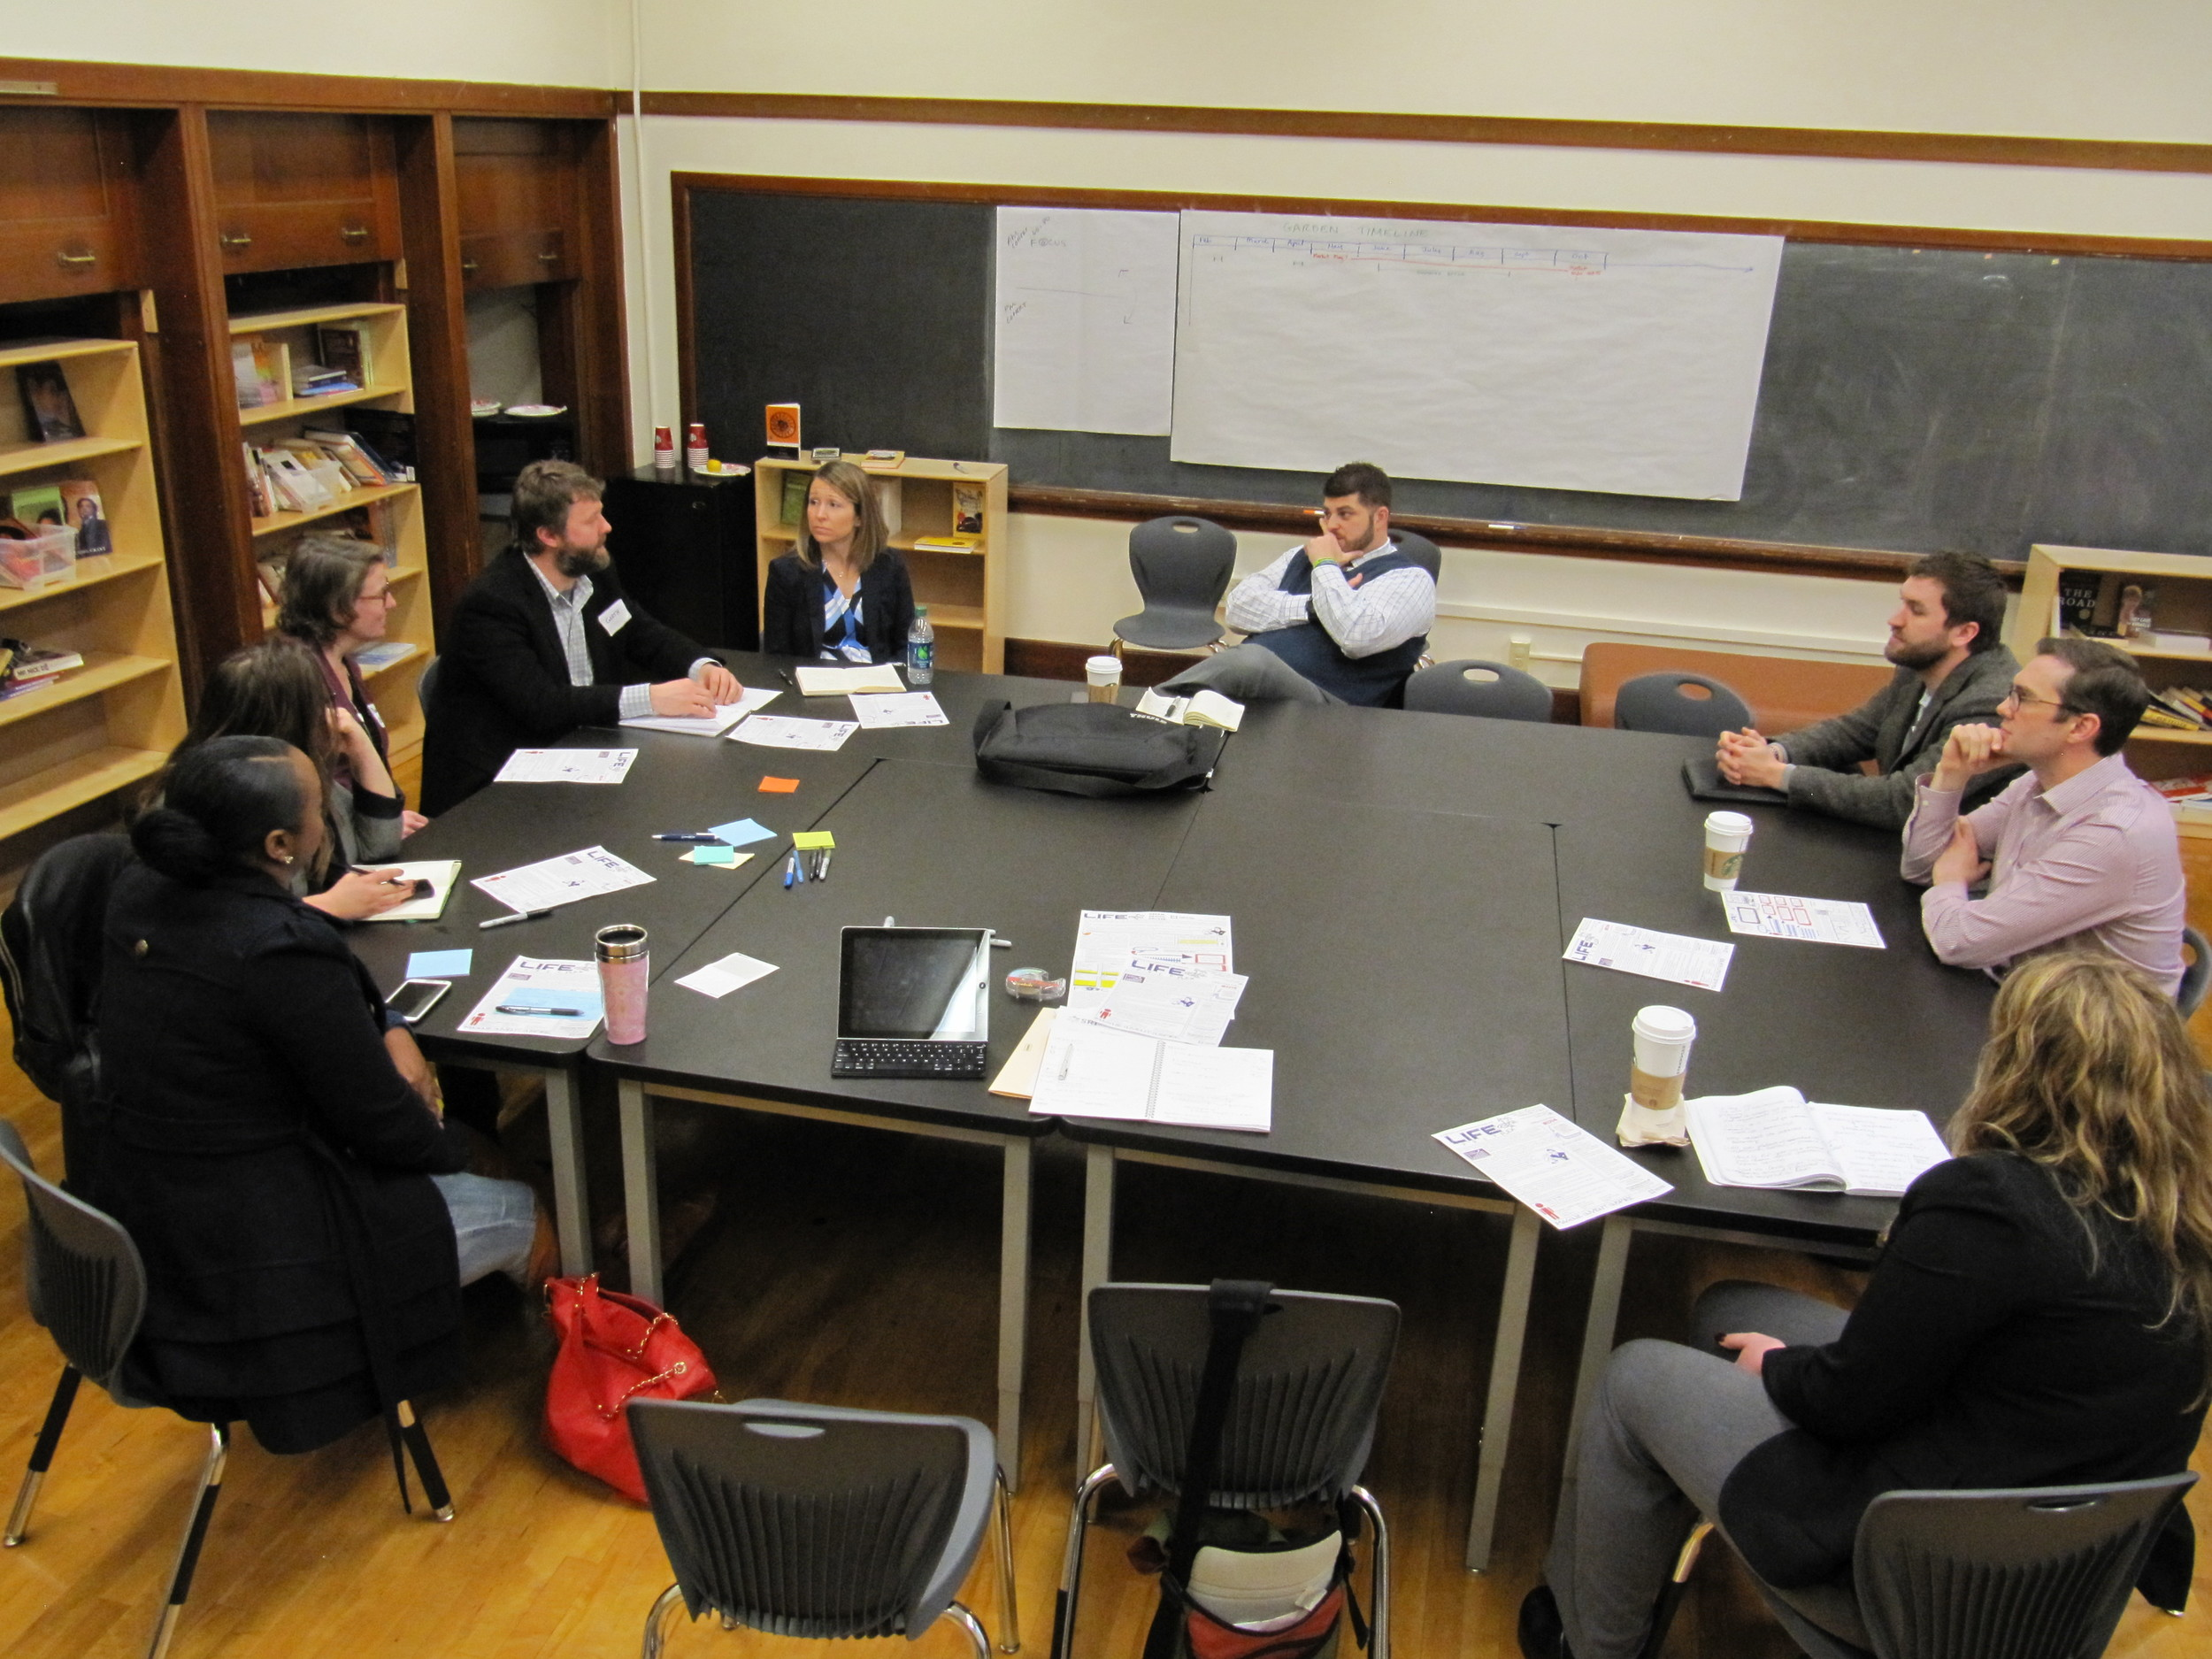 Innovating Principals CFG discusses school design while Danforth candidates observe.